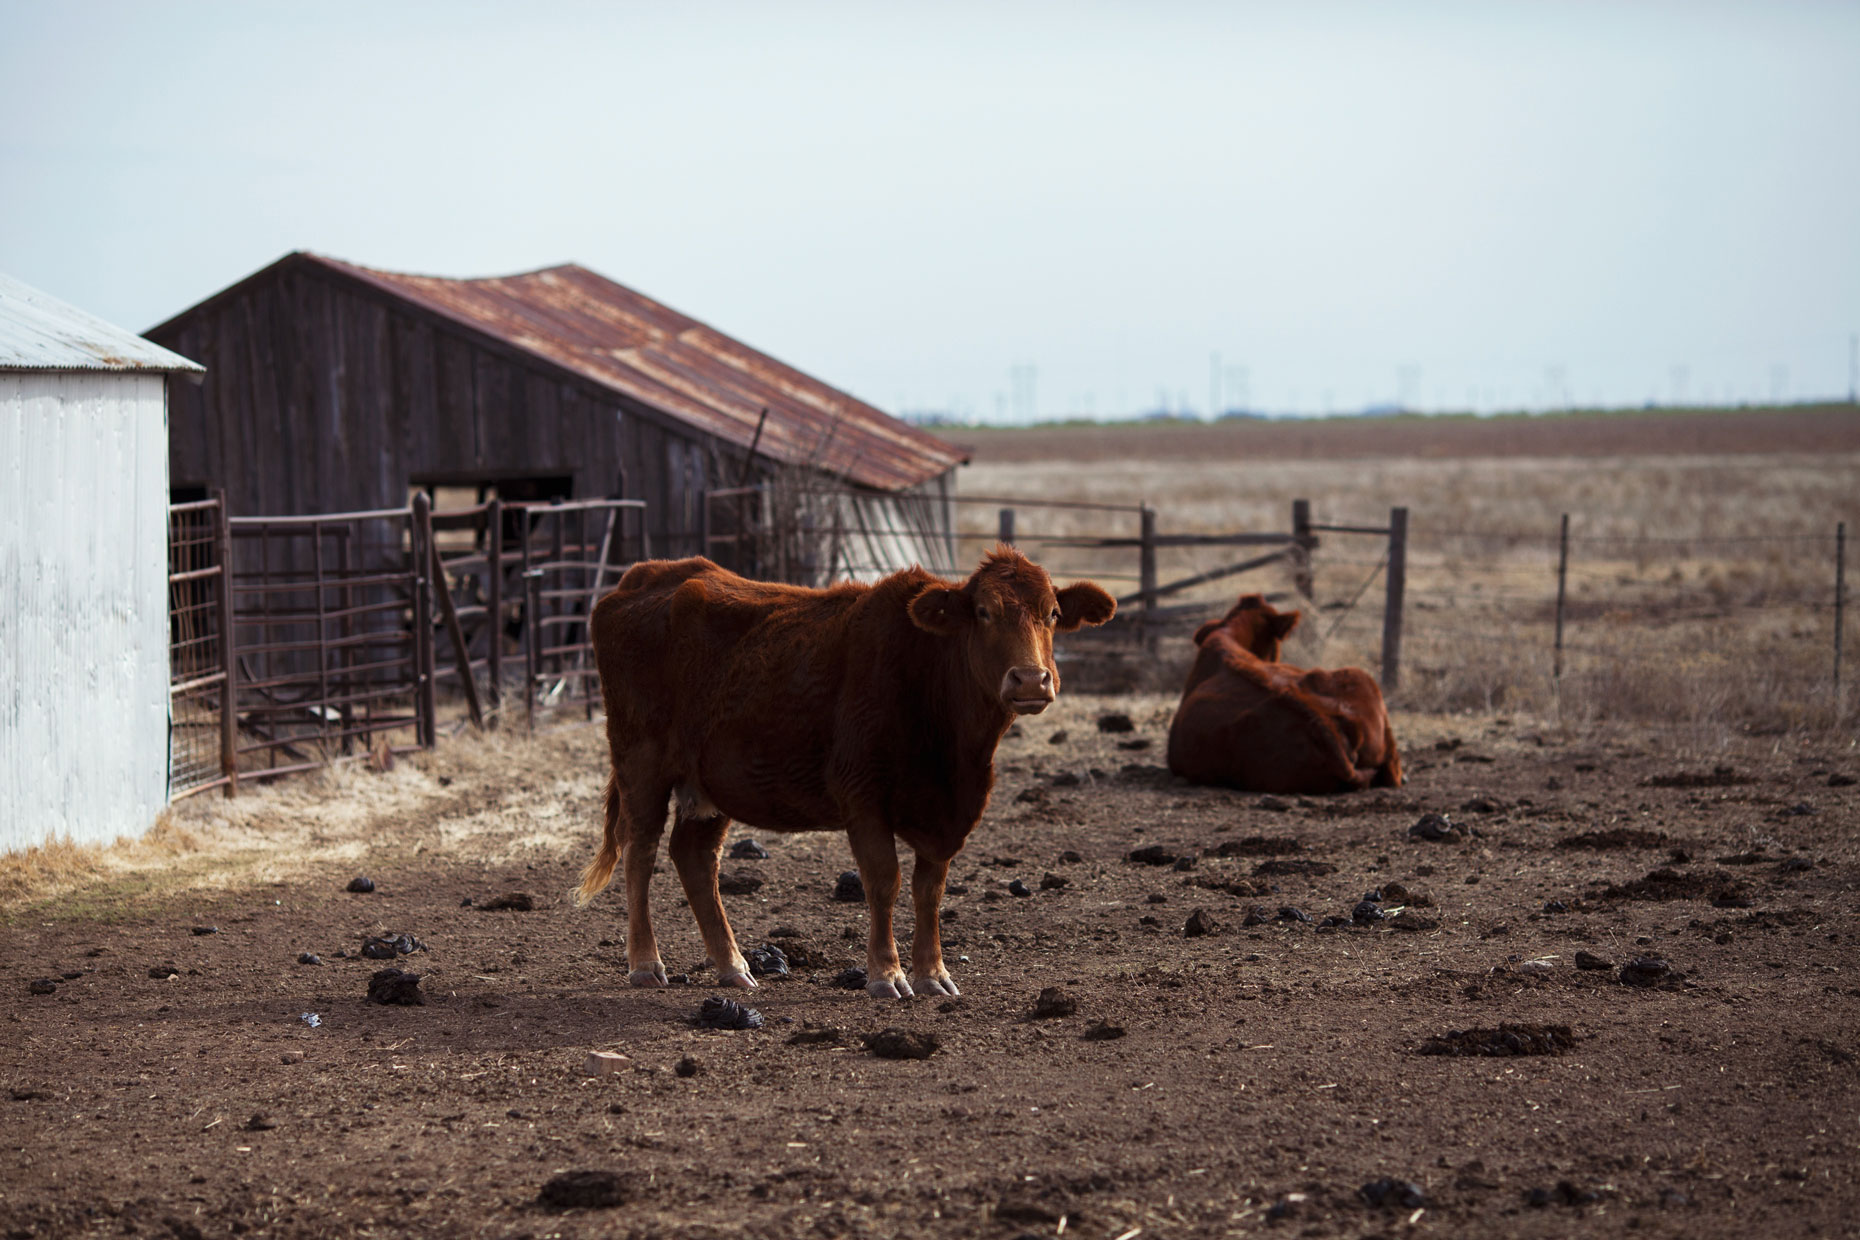 Cows at a ranch in the Texas Panhandle